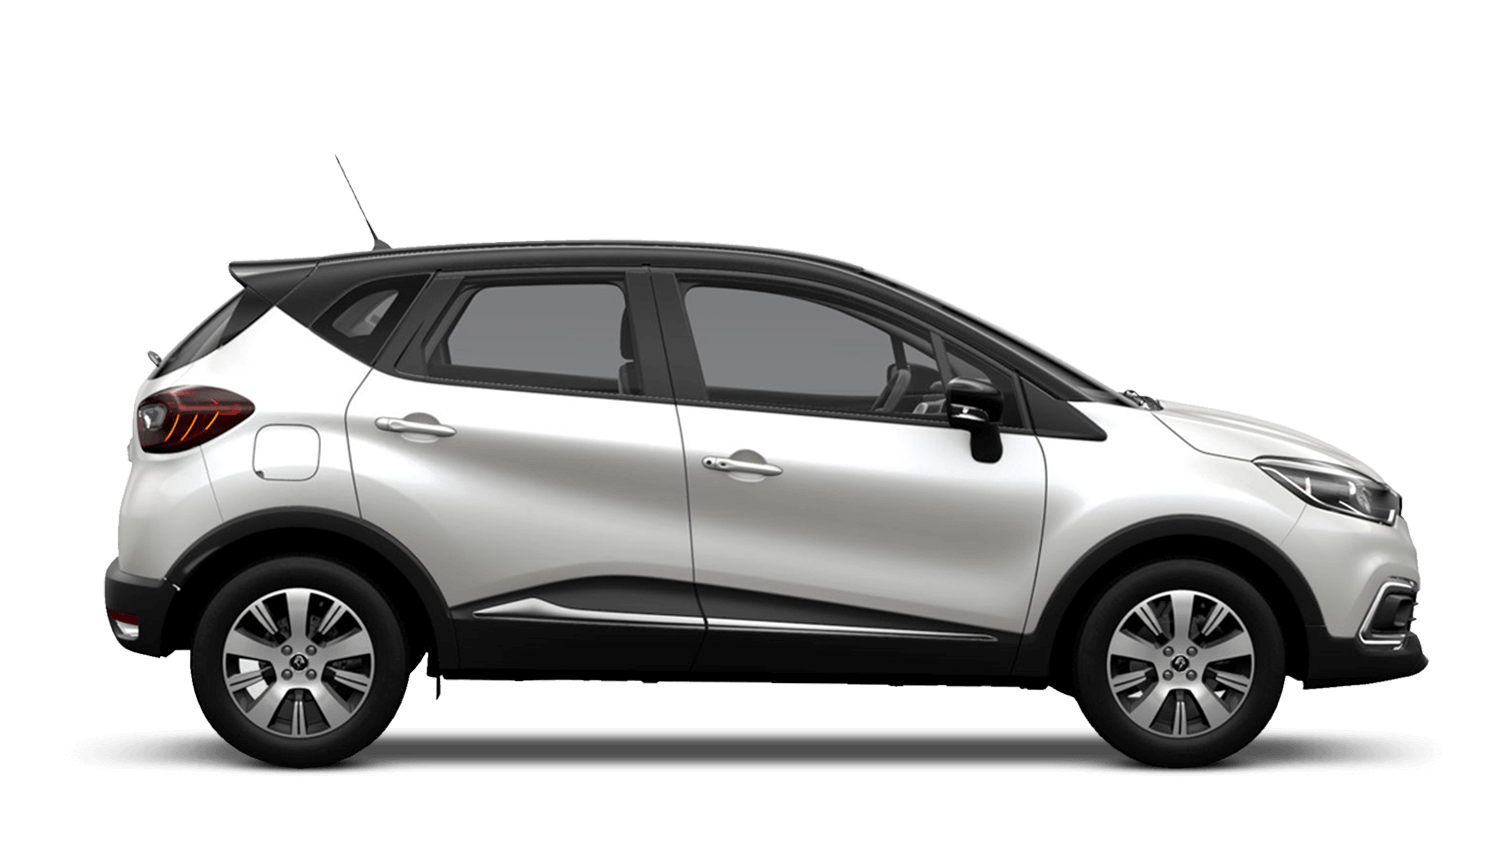 Arctic White with Diamond Black roof Renault CAPTUR